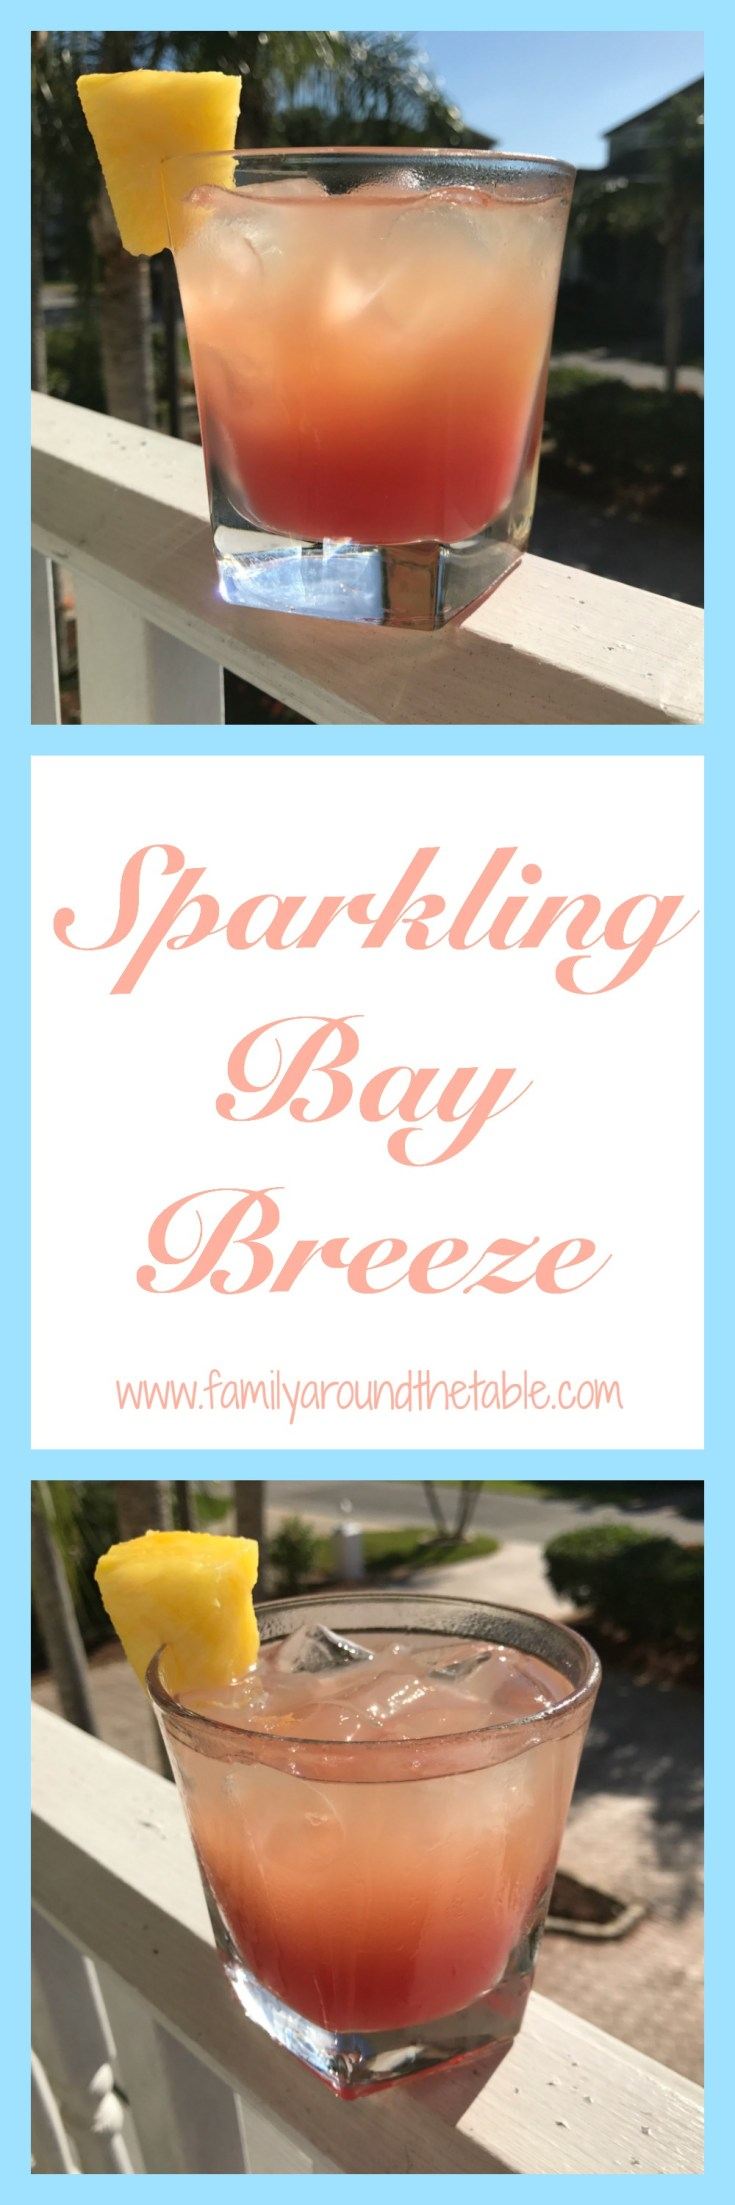 A sparkling bay breeze is a great cocktail for happy hour.